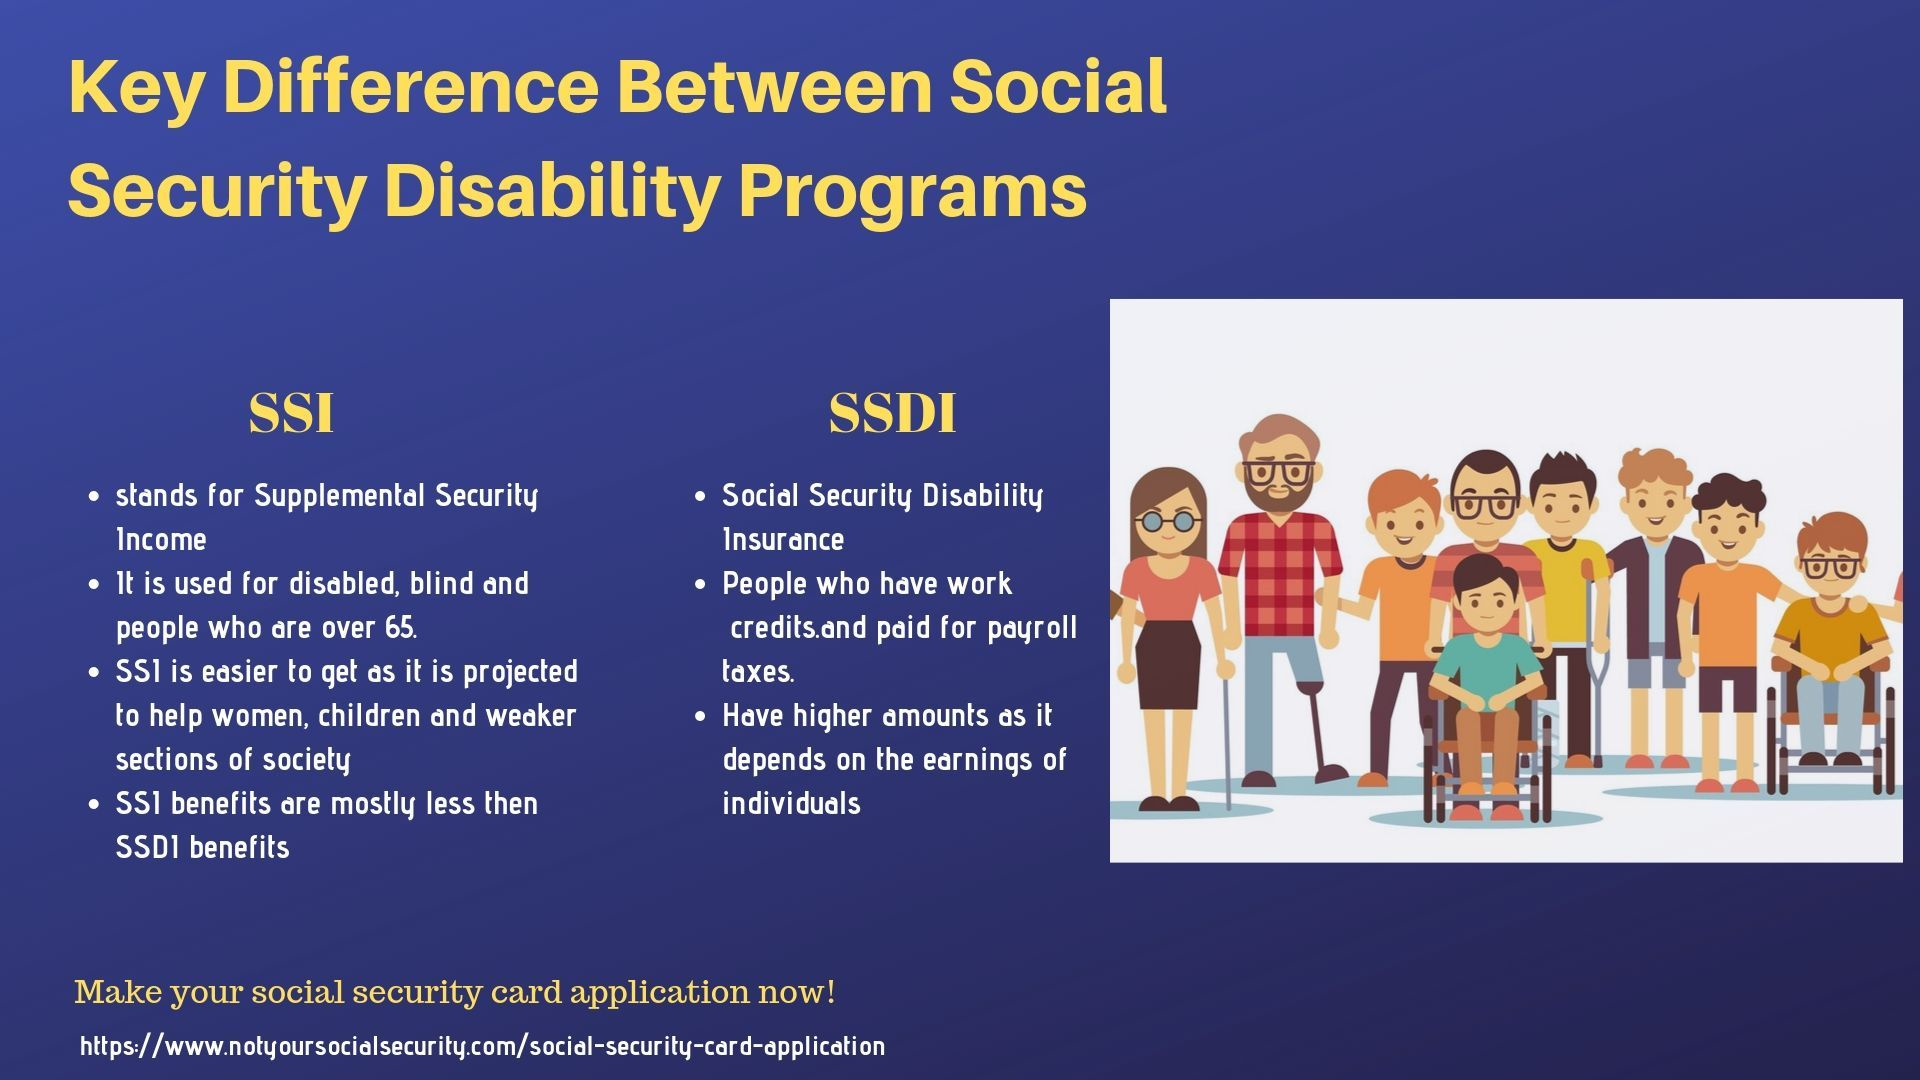 4b97843d2023ff77bacb317710816b1d - Social Security Online Application For Child